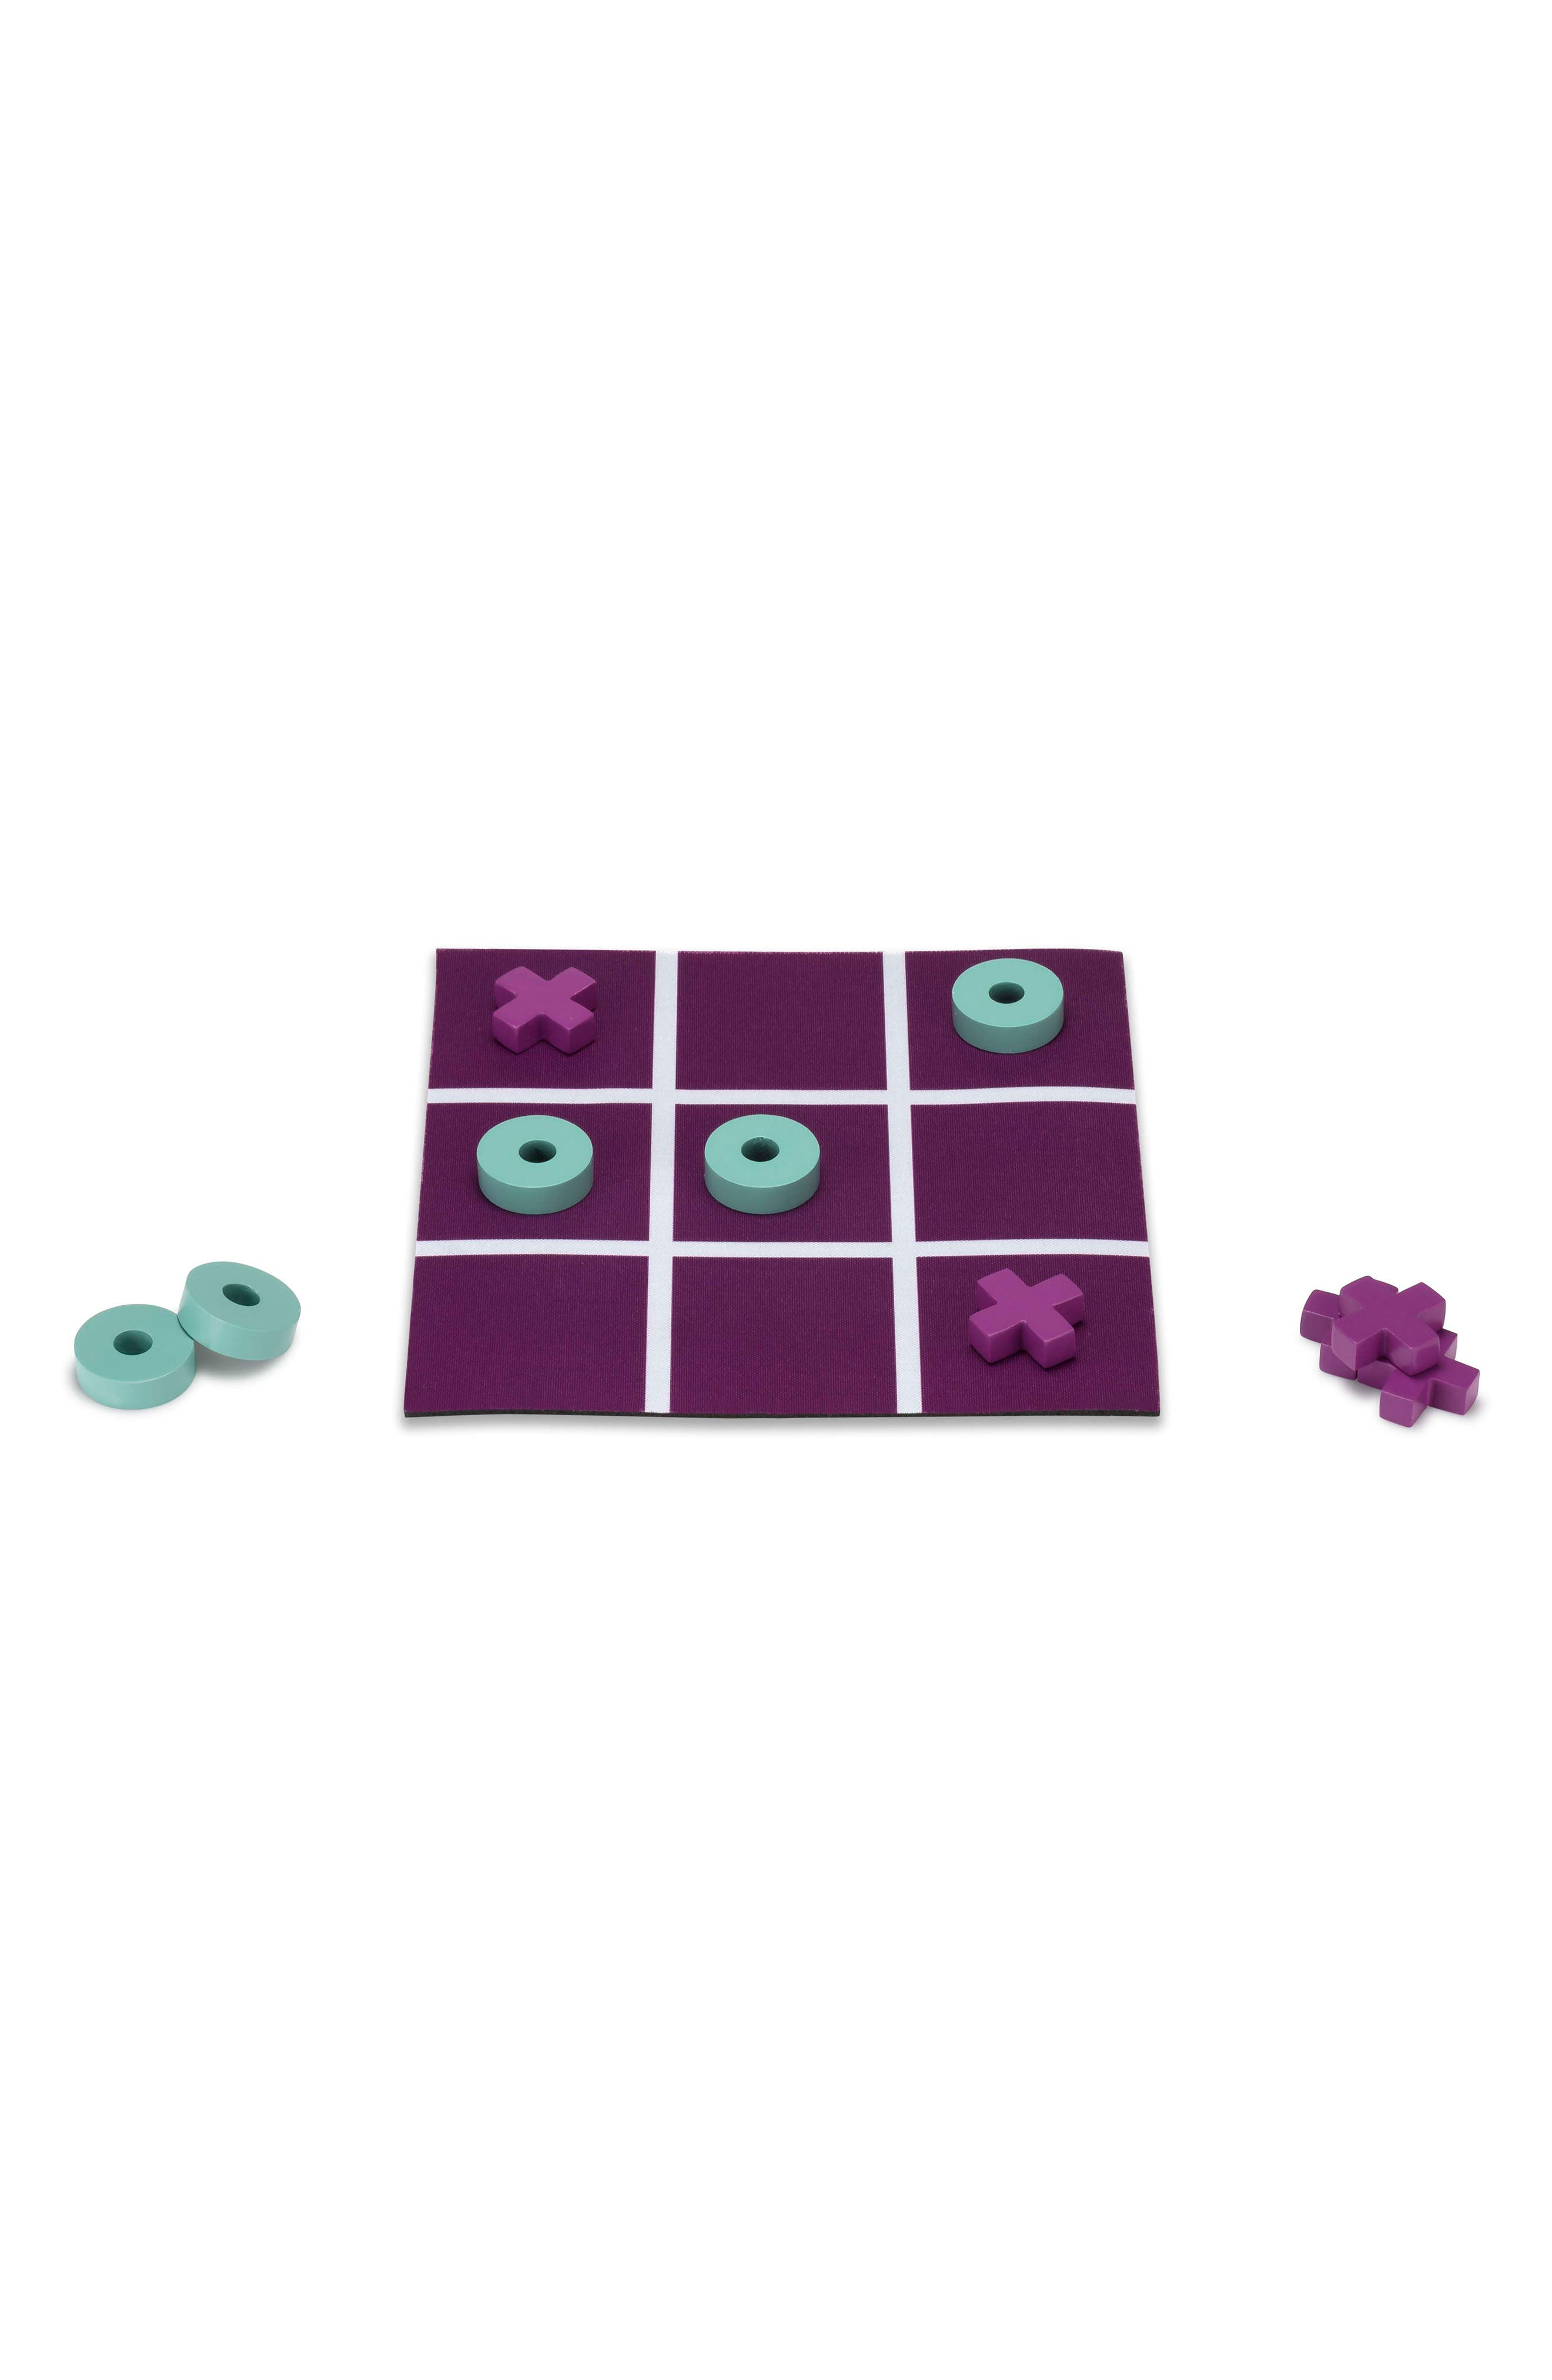 Desktop Games 11-Piece Pocket Tic-Tac-Toe Set,                             Alternate thumbnail 2, color,                             500